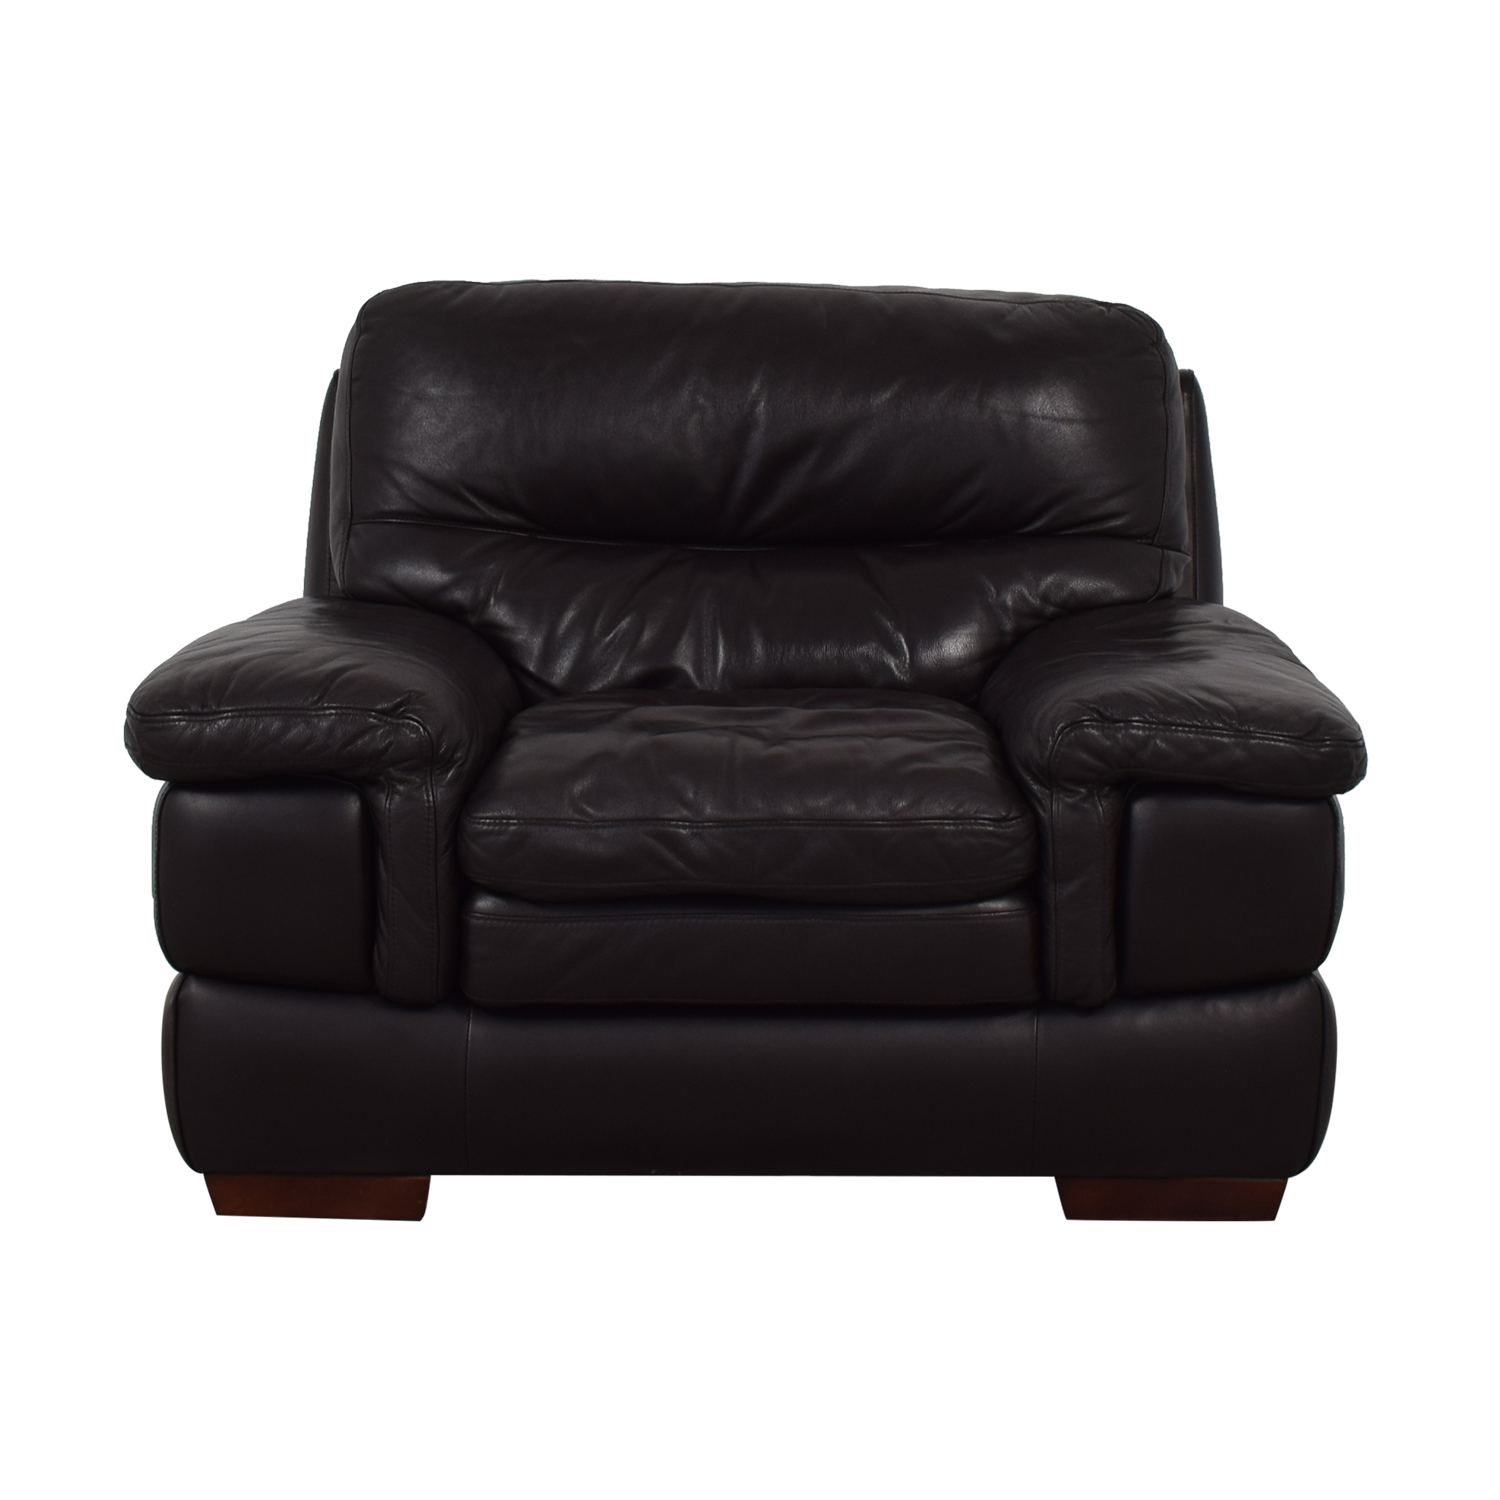 Bob's Discount Furniture Bob's Discount Furniture Brown Leather Accent Chair for sale